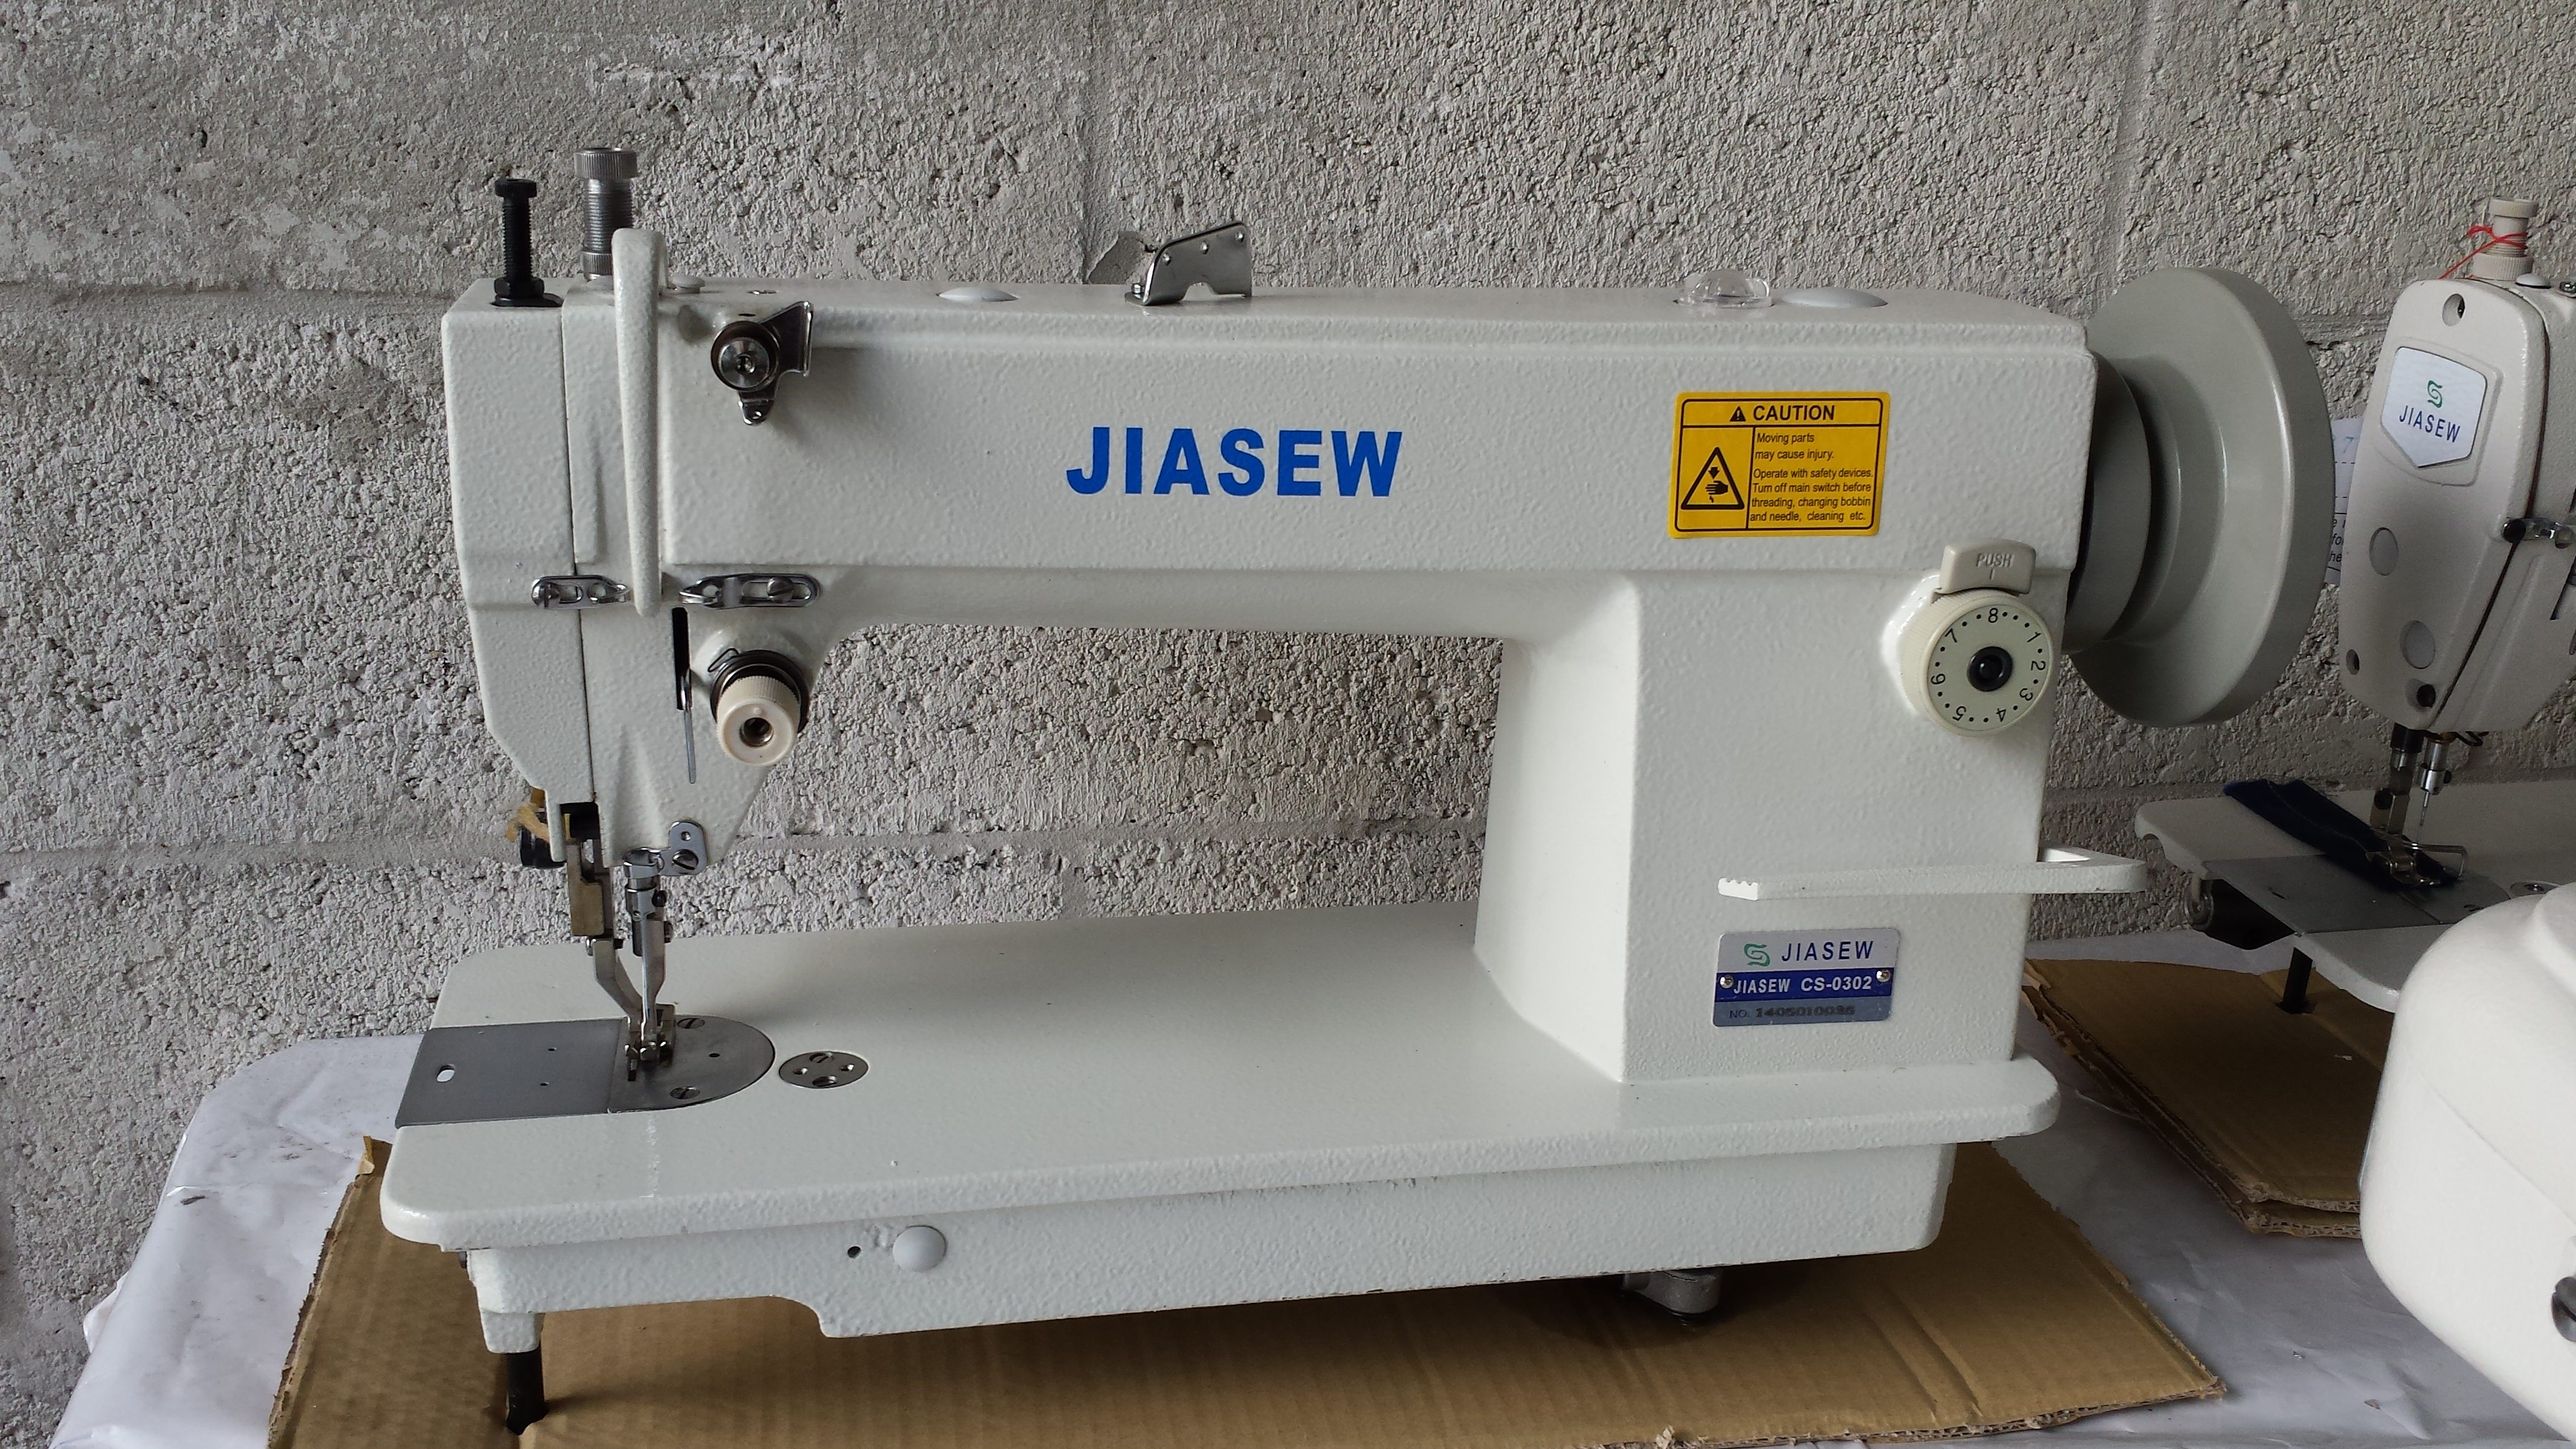 jiasew cs 0302 walking foot needle feed industrial upholstery sewing machine 9mmfootlift with. Black Bedroom Furniture Sets. Home Design Ideas